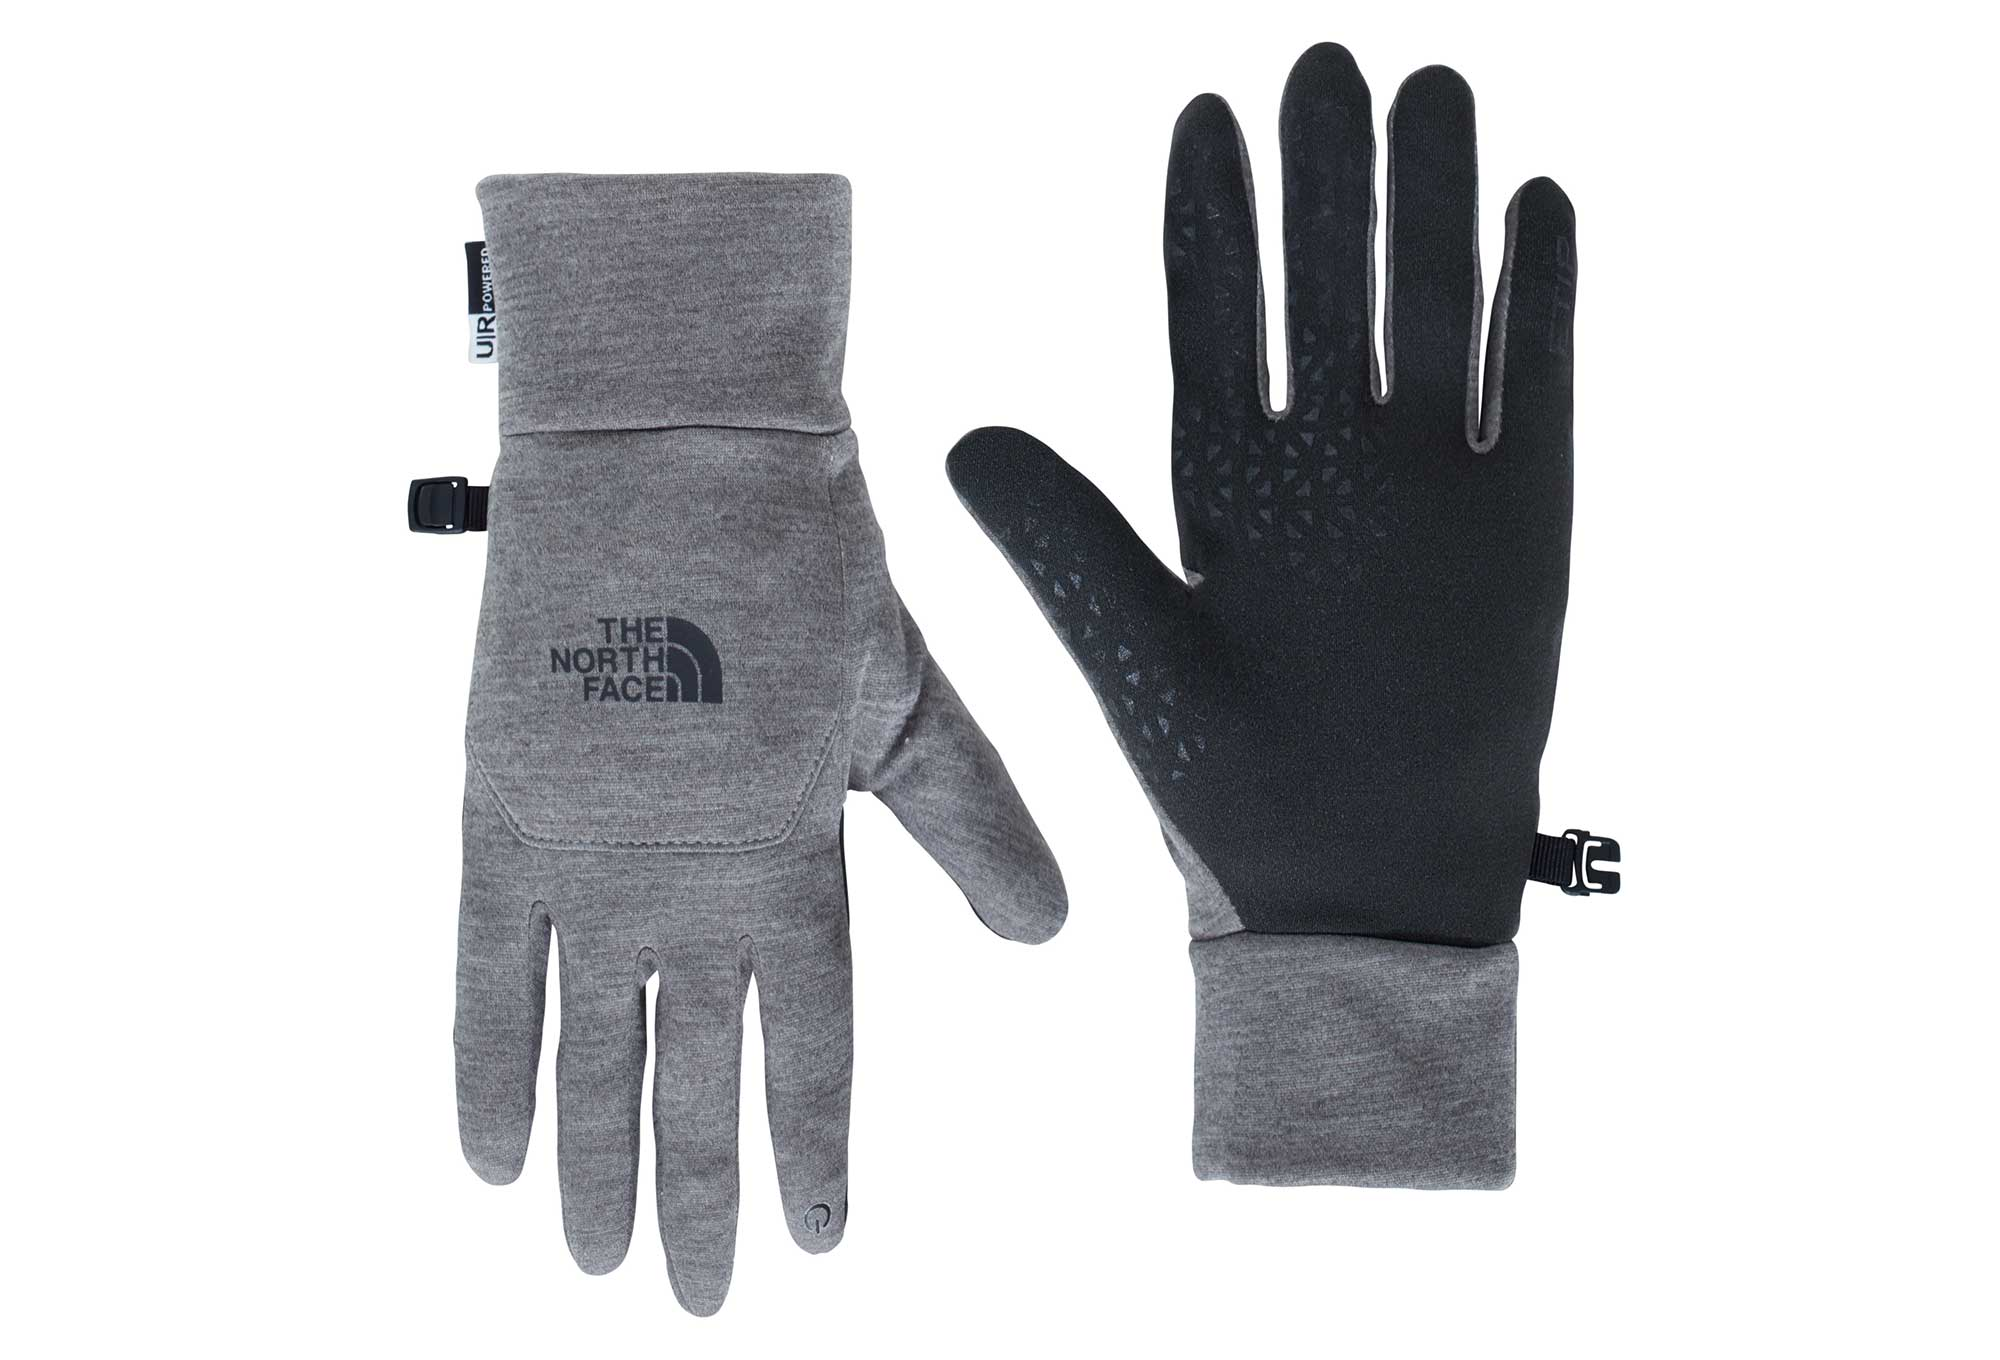 1cca10261 The North Face Etip Pair of Winter Gloves Grey